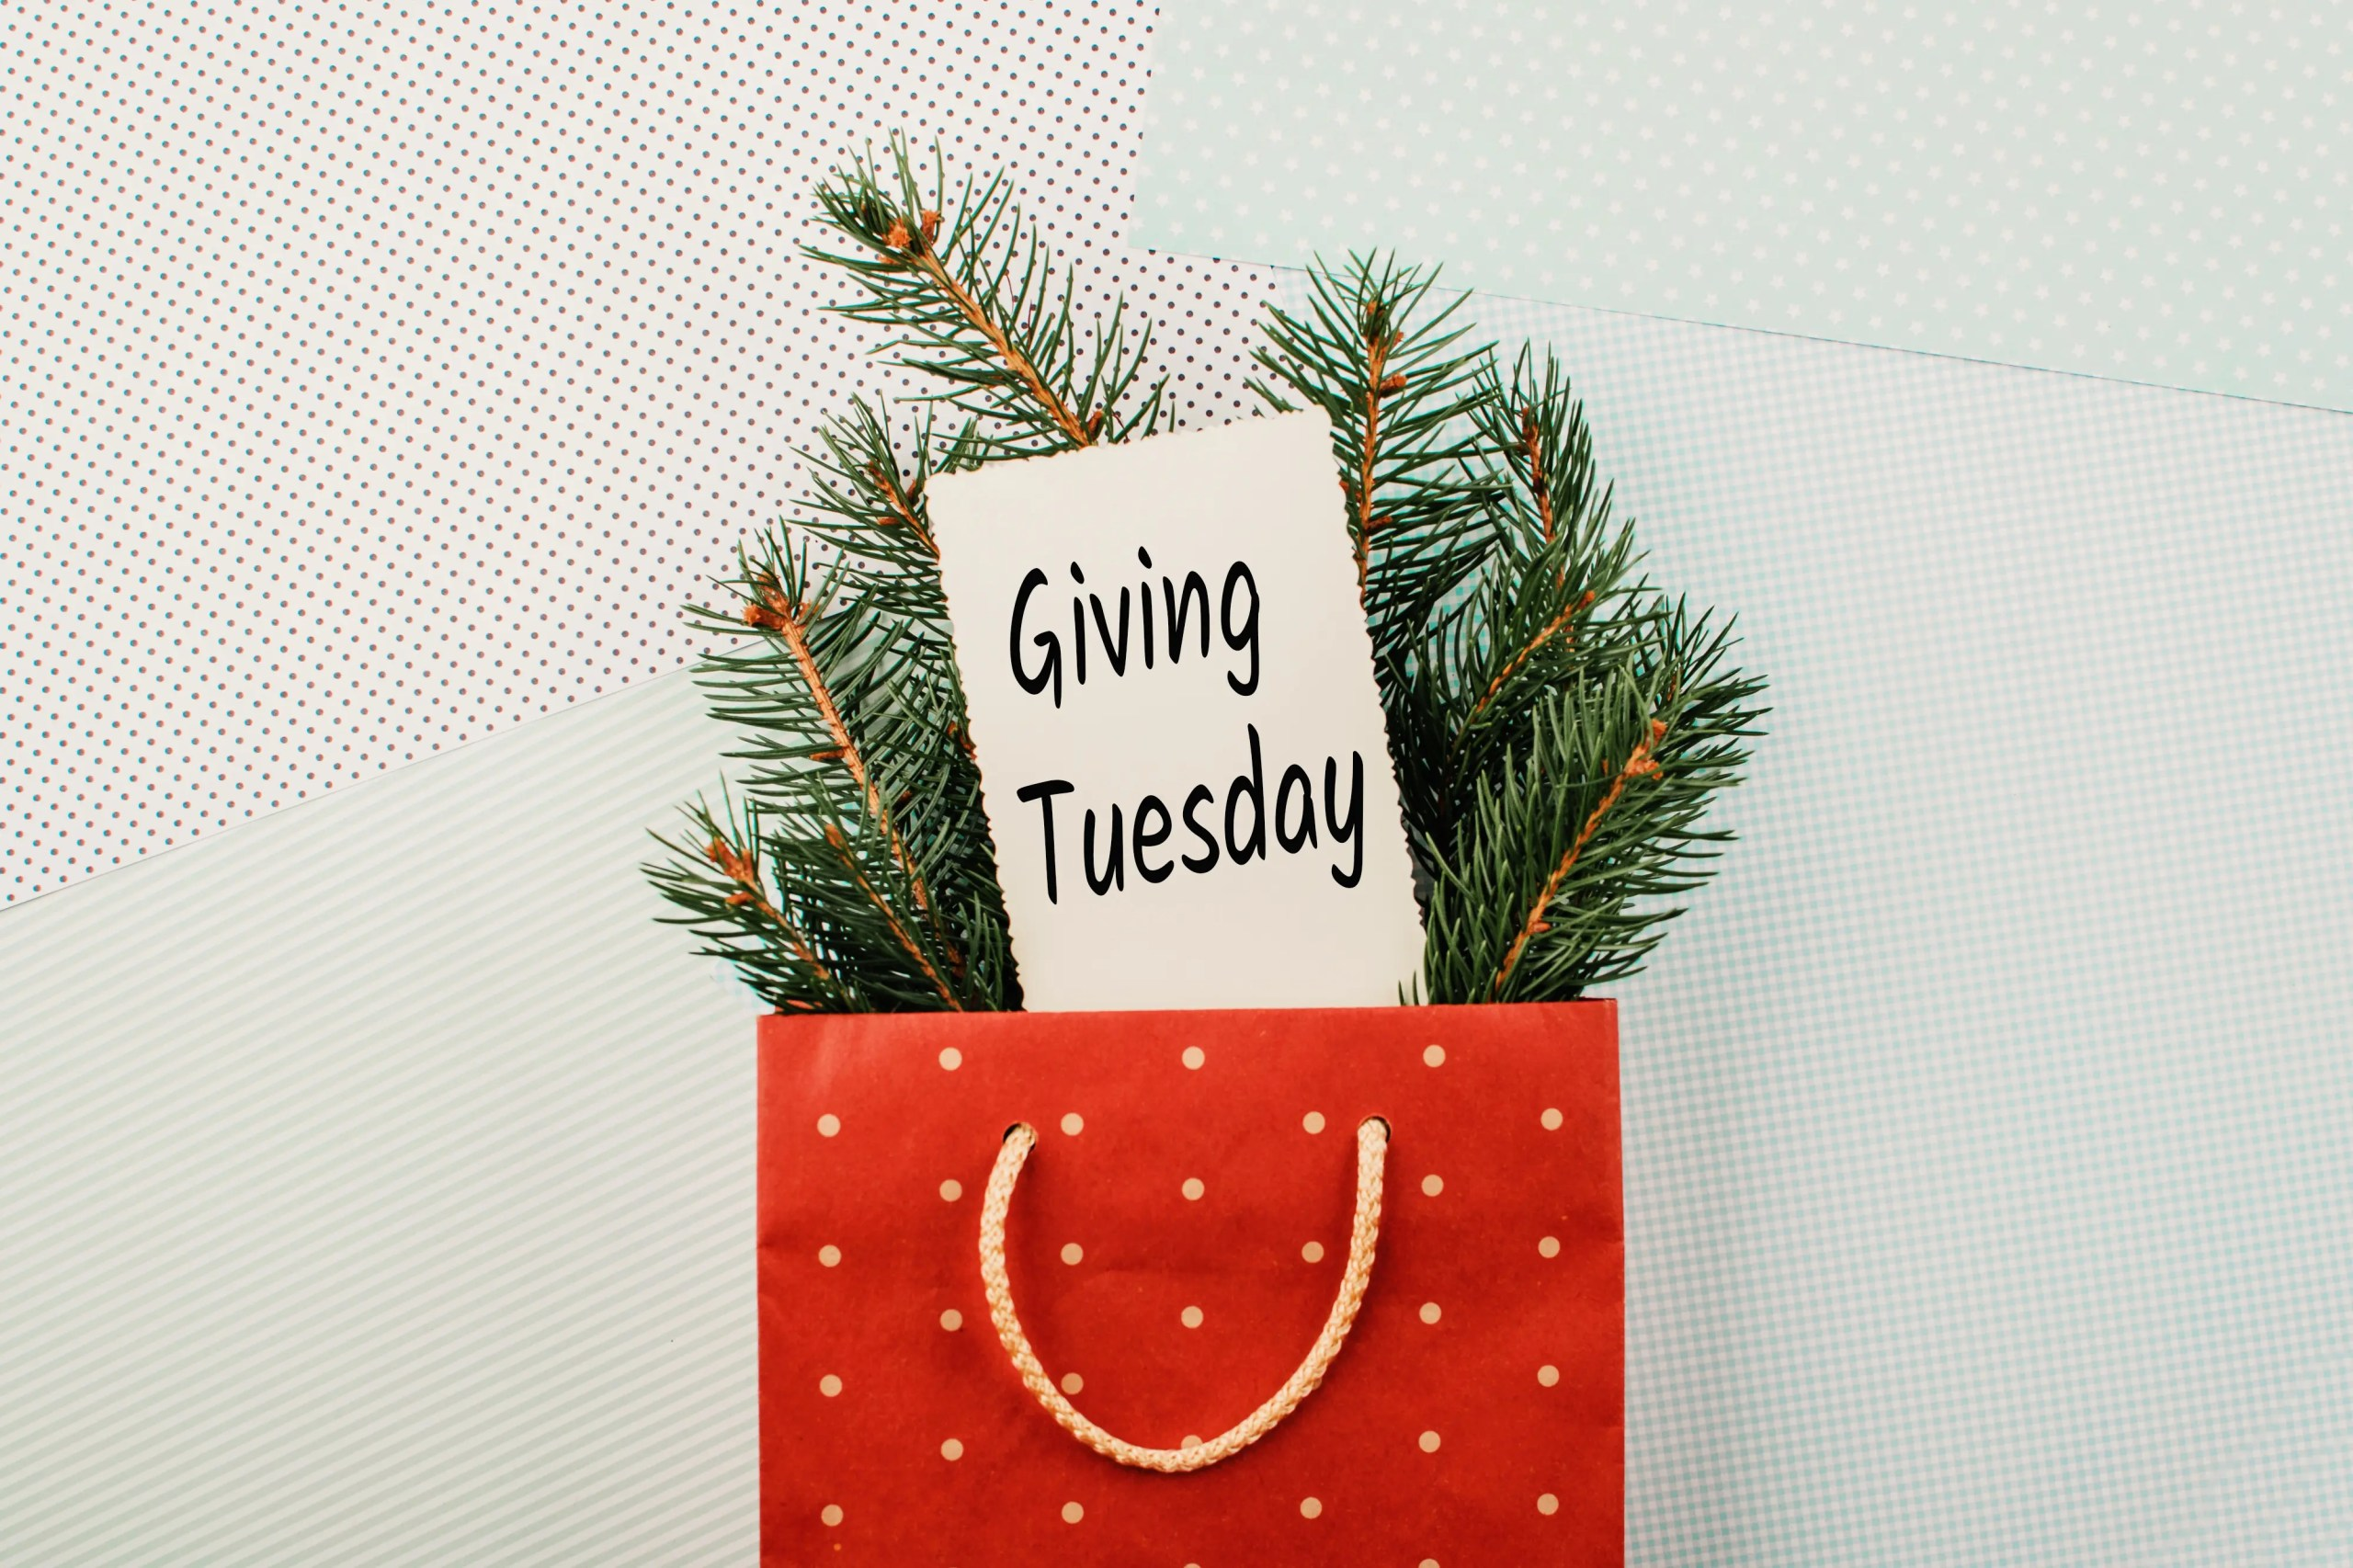 Making an Impact on #GivingTuesday: How Can You Give Back?